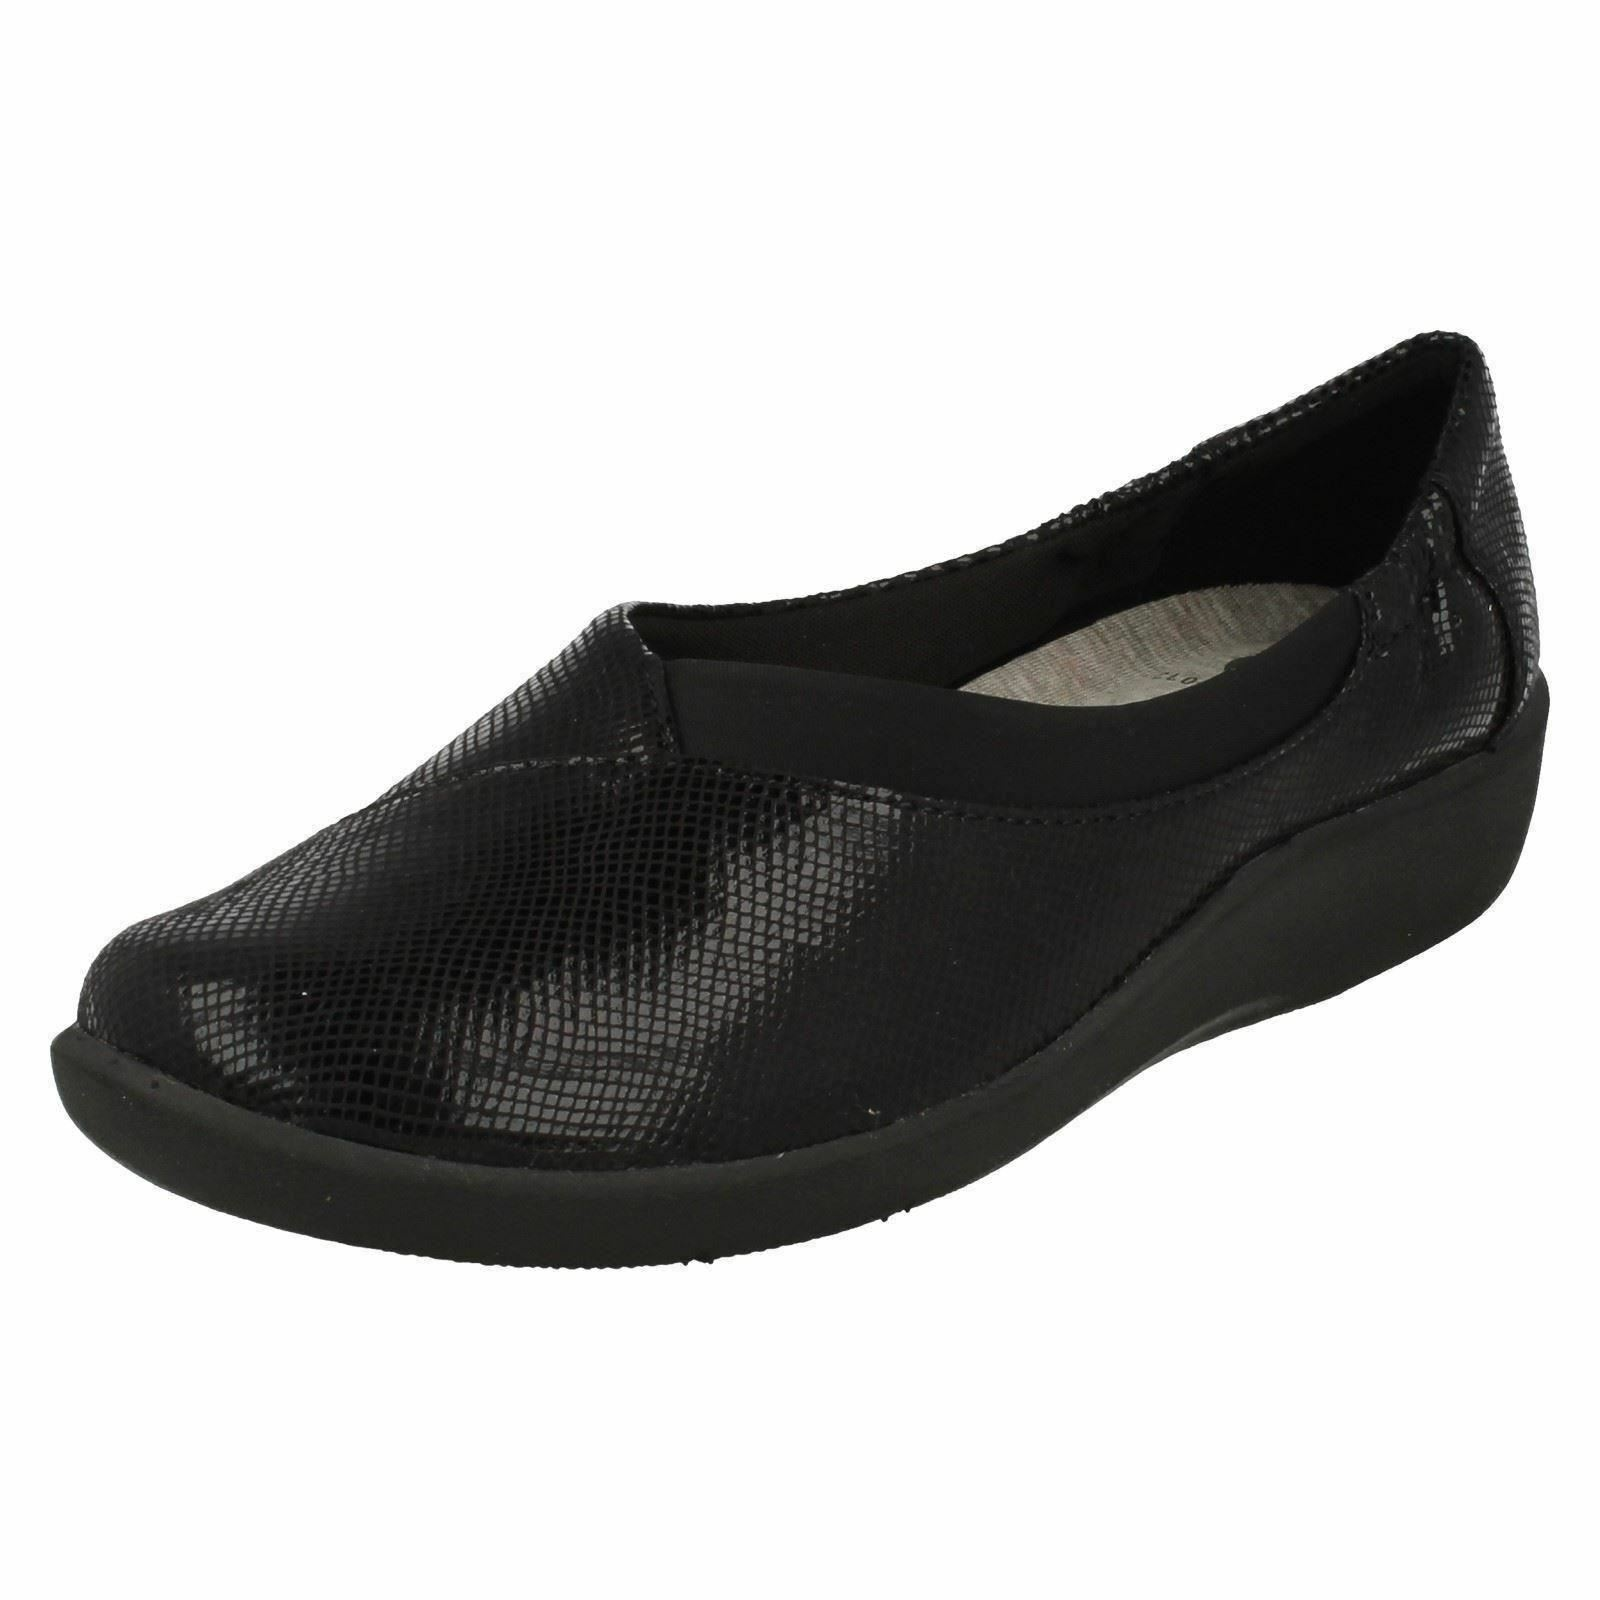 Clarks Sillian Jetay Damen Slipper